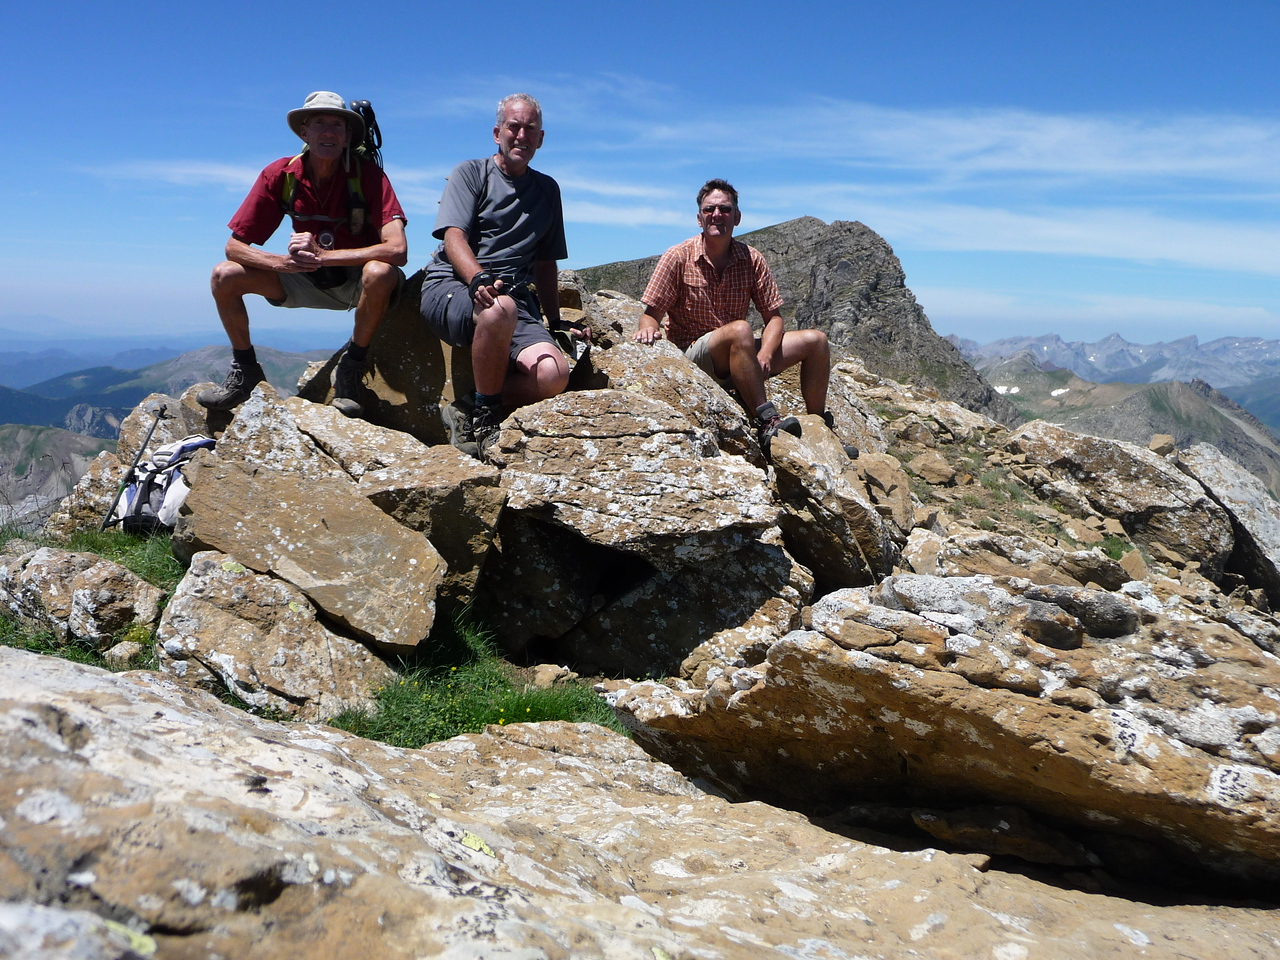 Vic, Edward and Gareth on the summit of El Sombrero 2560m